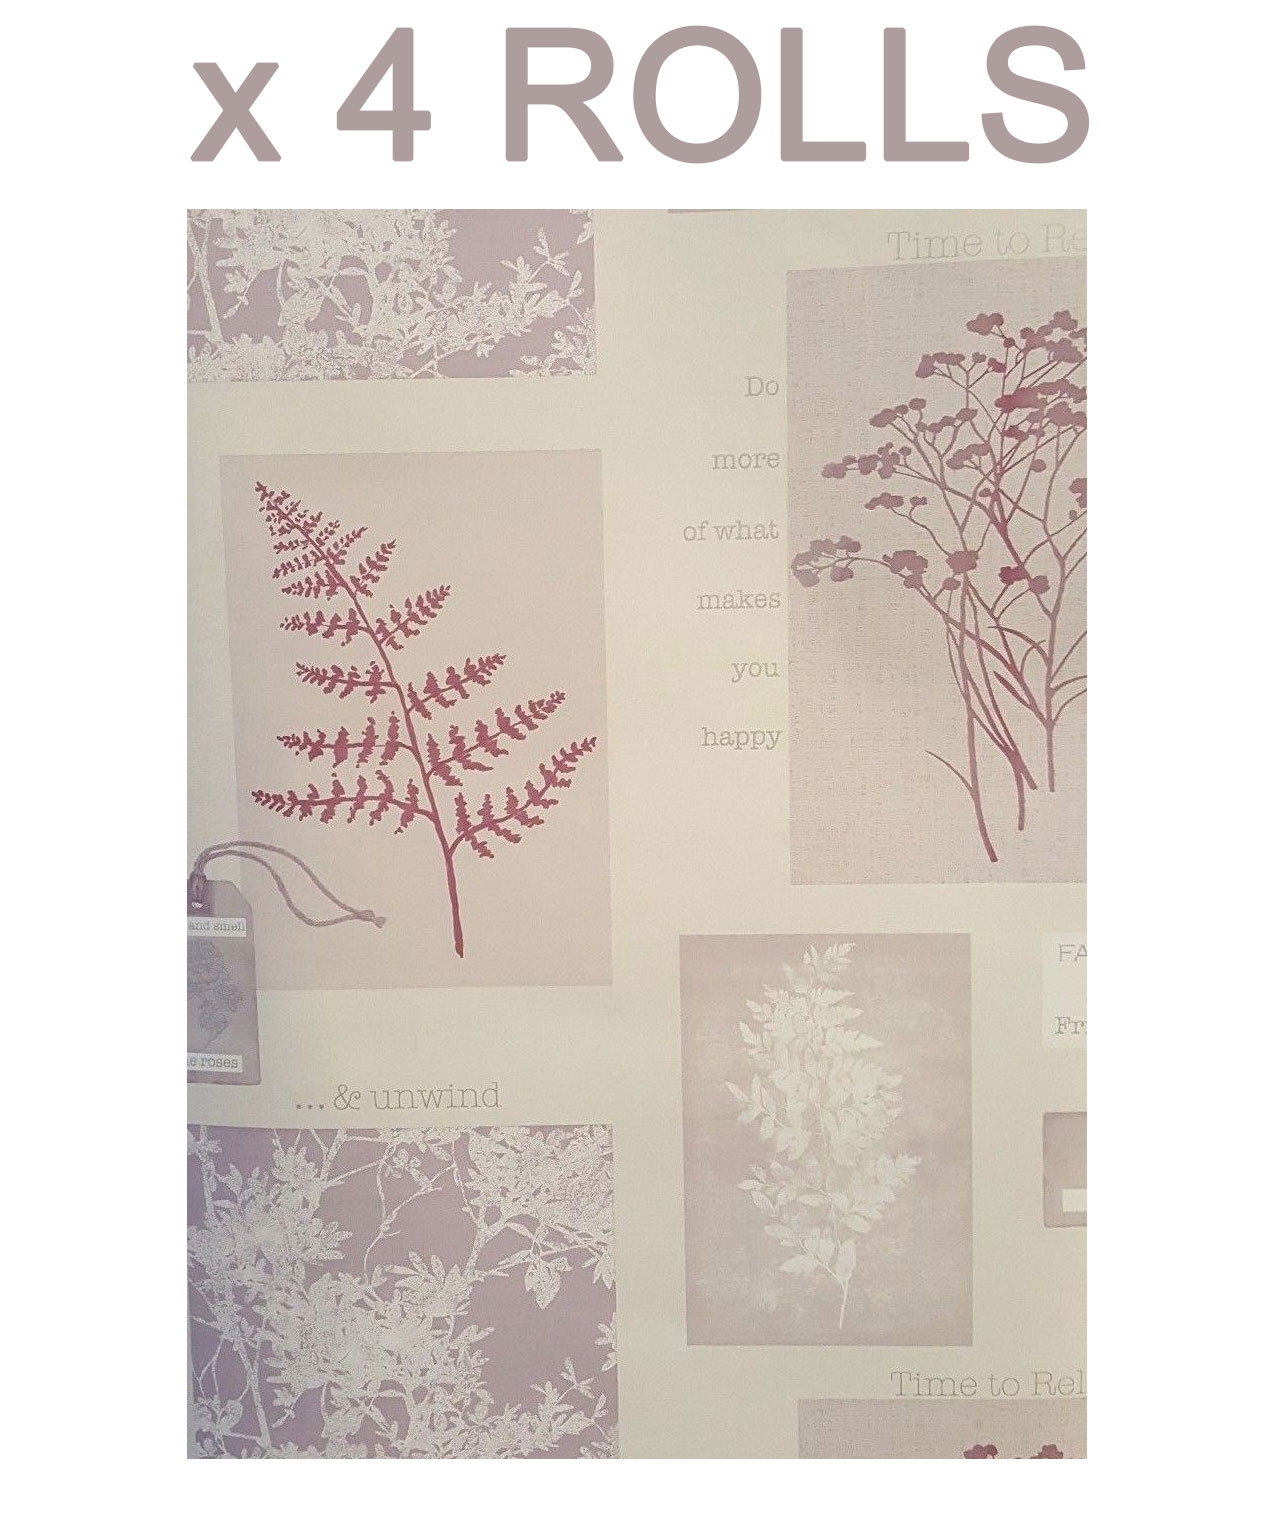 Plum Quotes Wallpaper Trees Flowers Collage Phrases Heavyweight 4